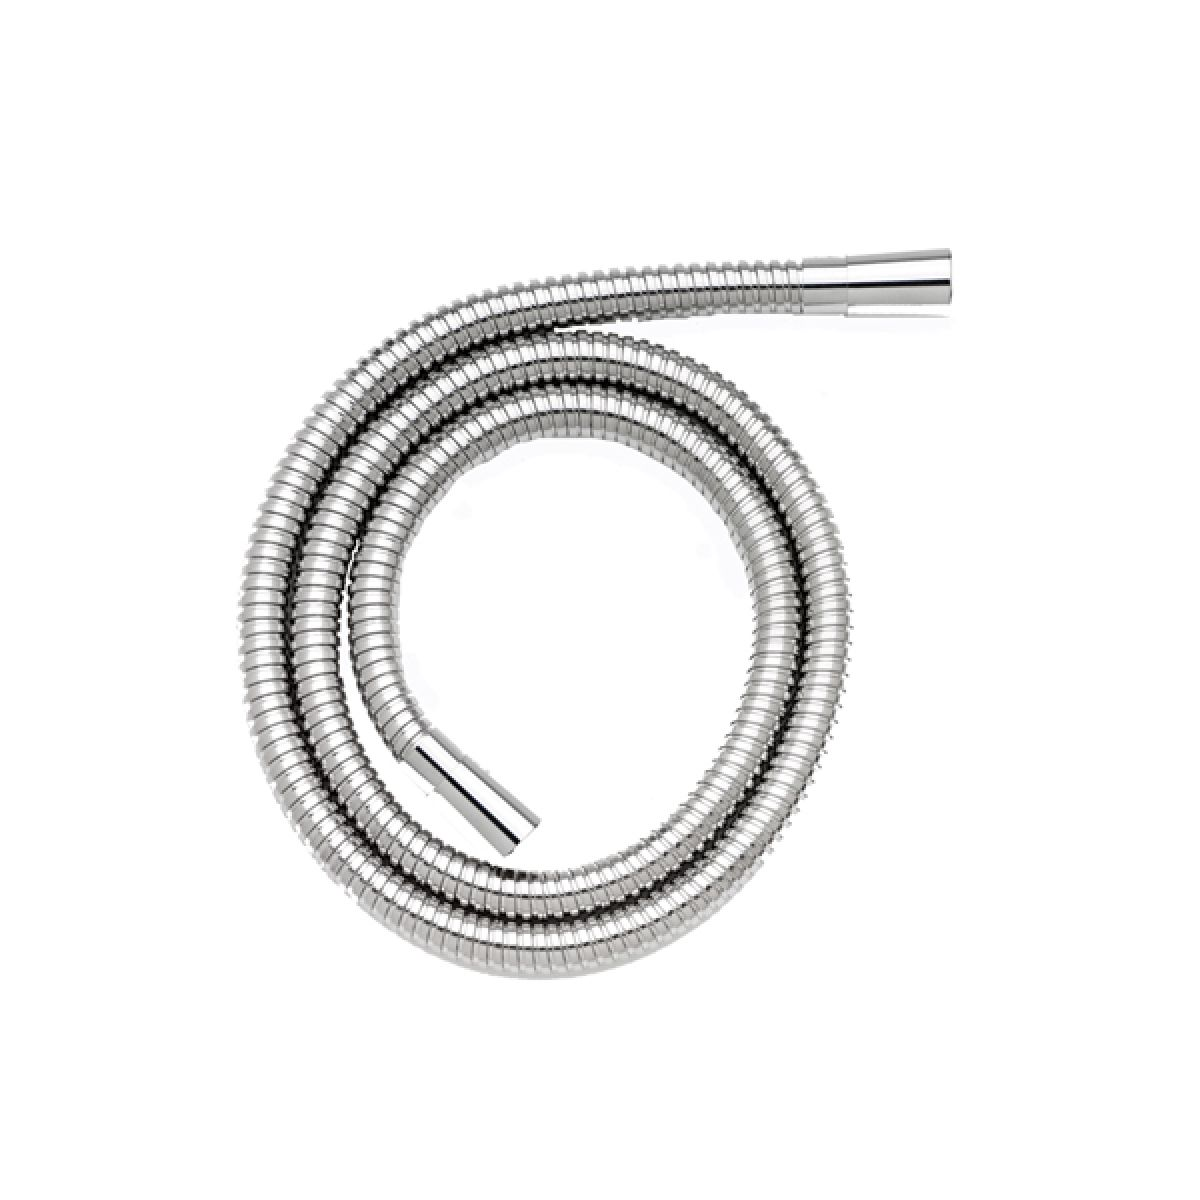 Croydex 1500mm Reinforced Stainless Steel Shower Hose With 11mm Bore Chrome